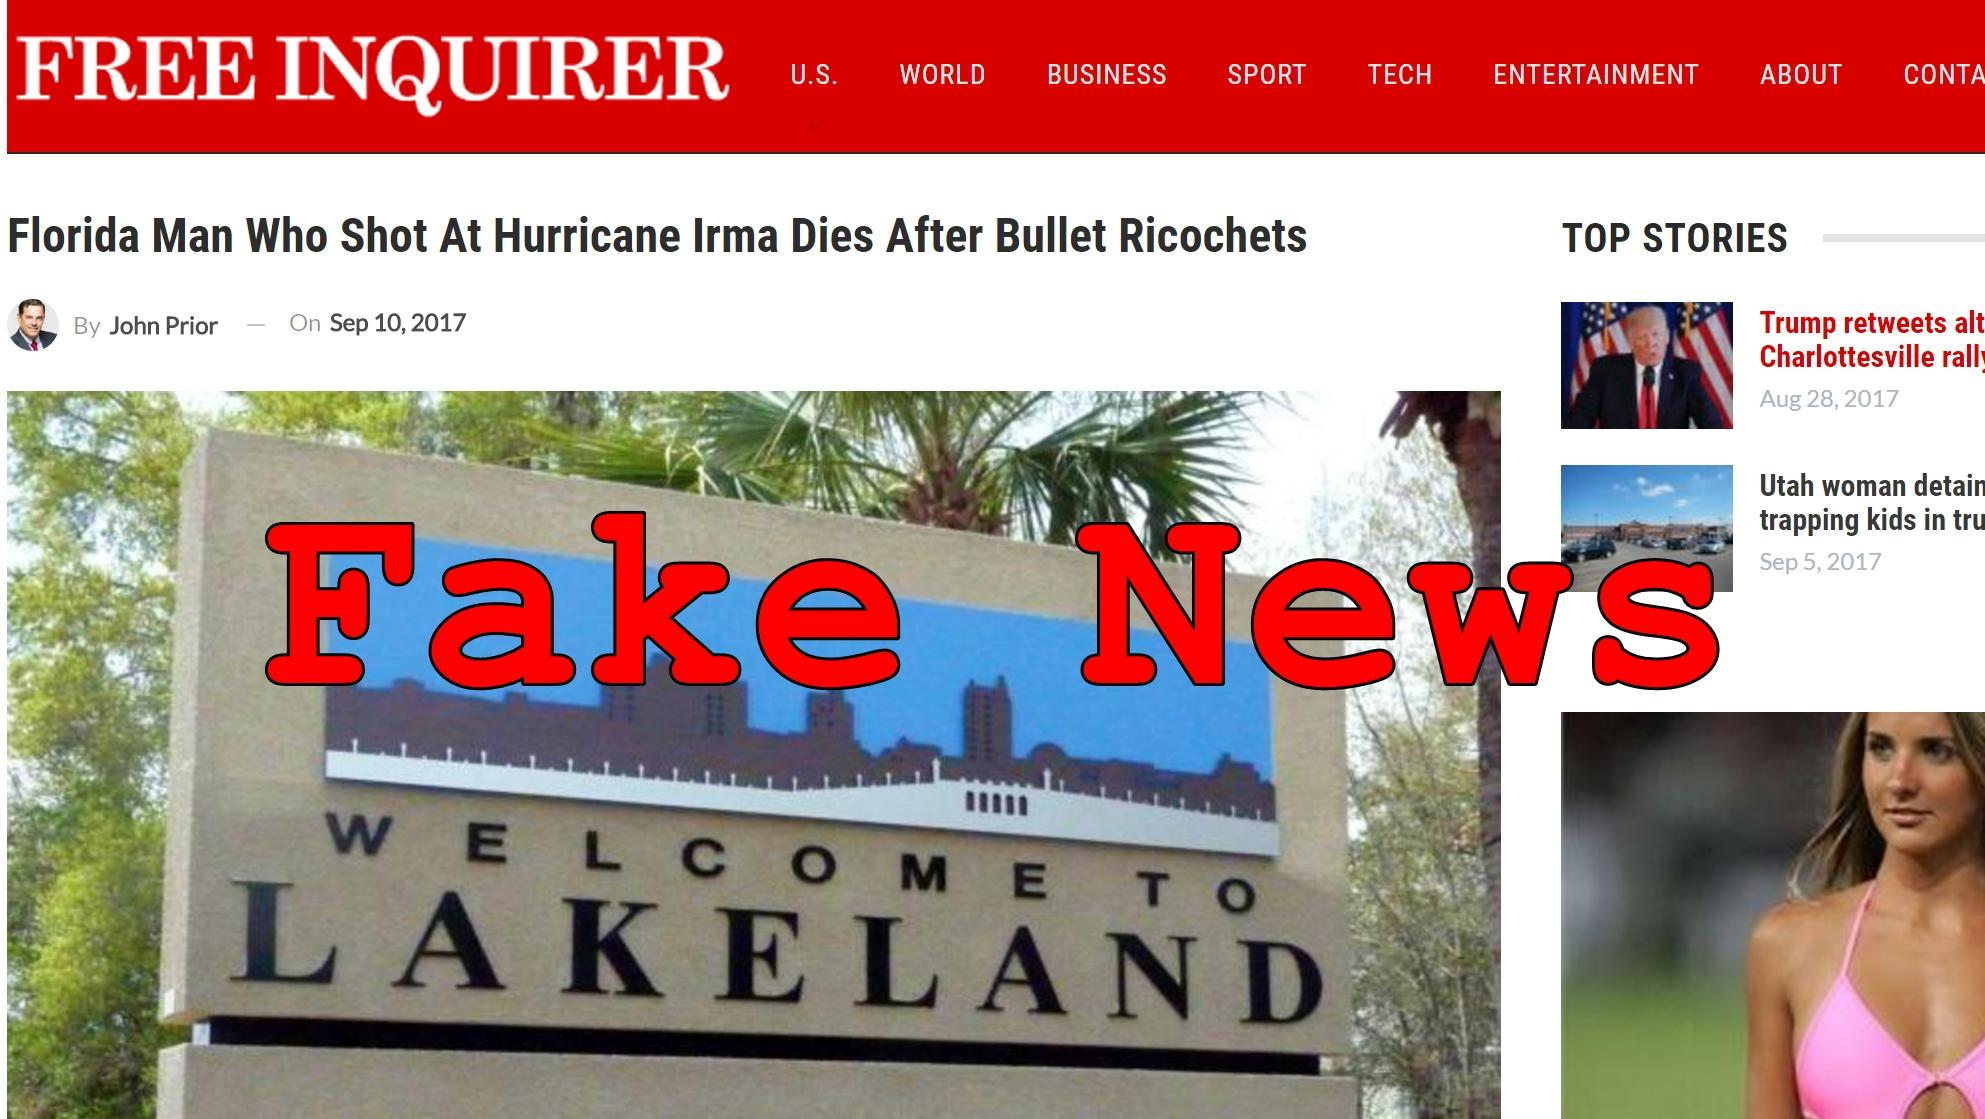 Fake News: Florida Man Did NOT Die After Bullet Ricochets When Shooting At Hurricane Irma